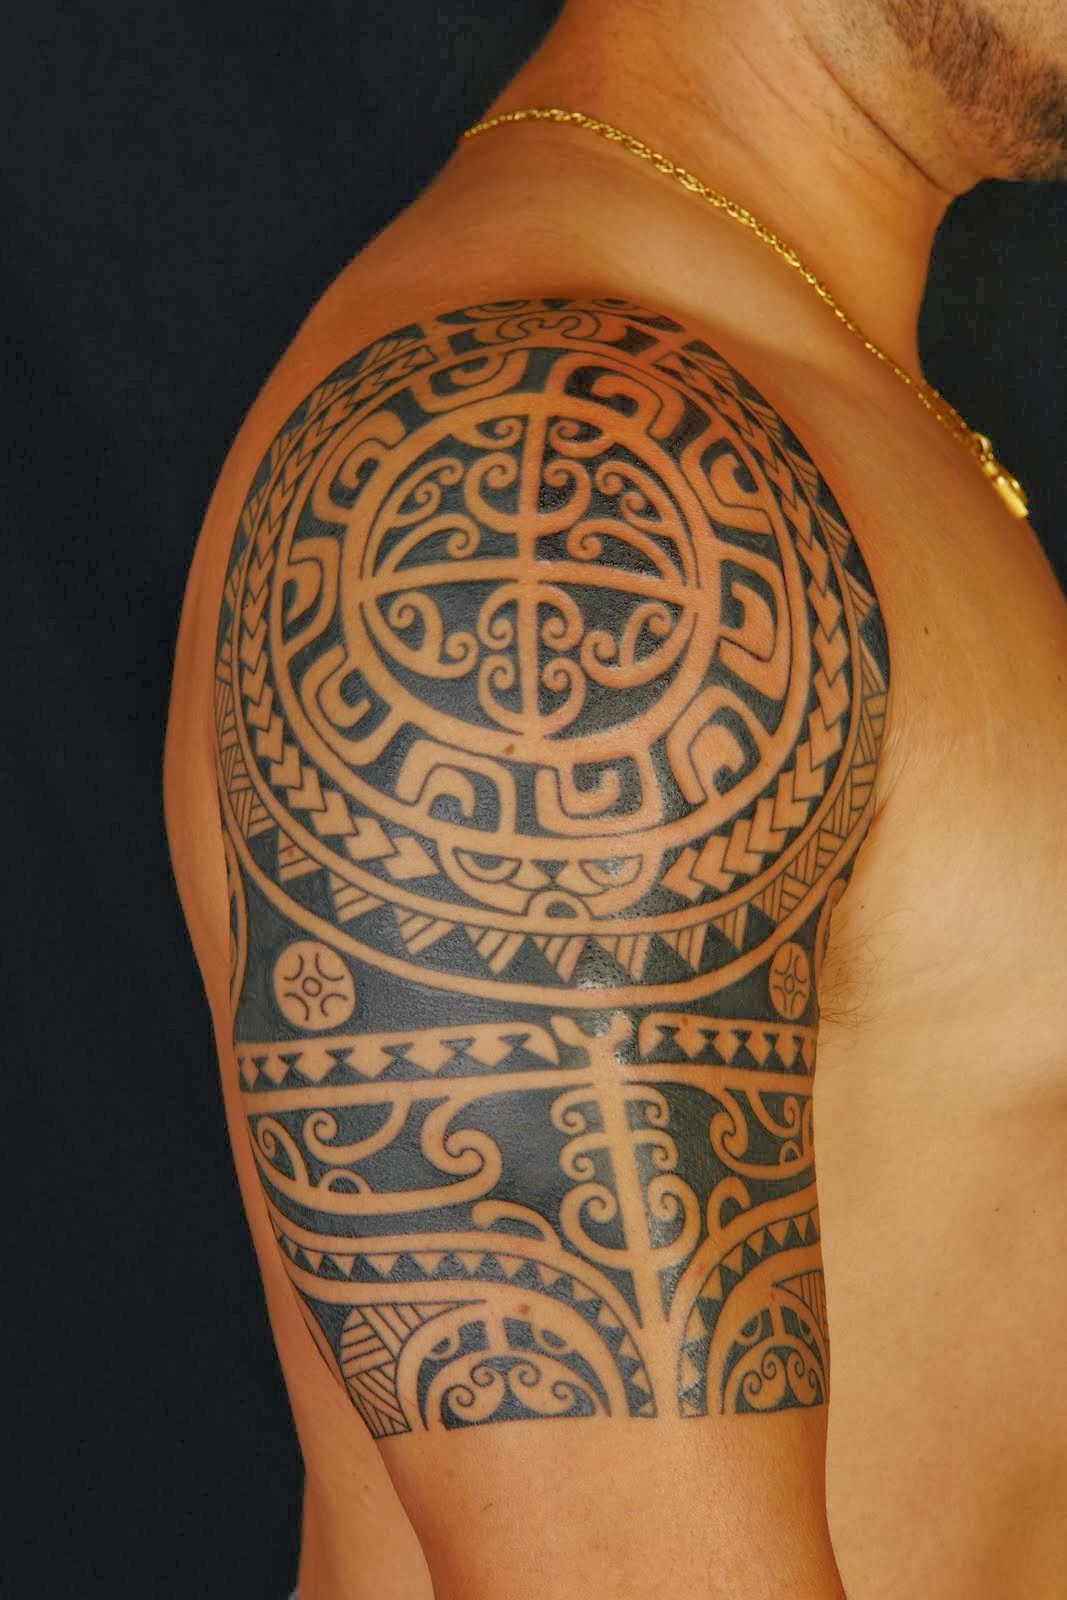 Maori Tattoo Strength: Achievers Kandy Online: Tattoos With Meaning